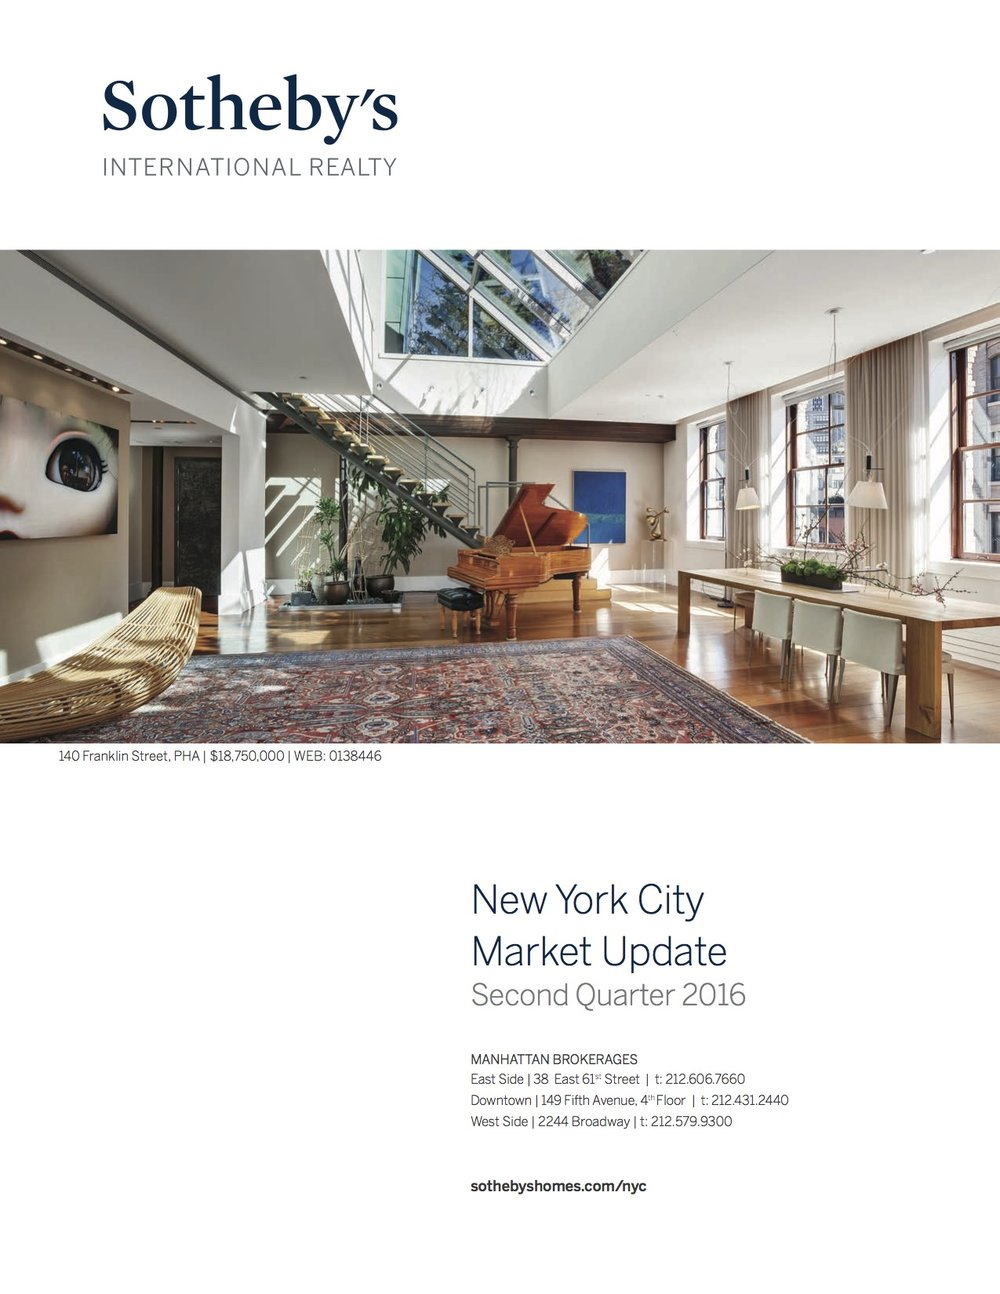 SothebysInternationalRealty_Manhattan_MarketReport_2016_Q2_1.jpg